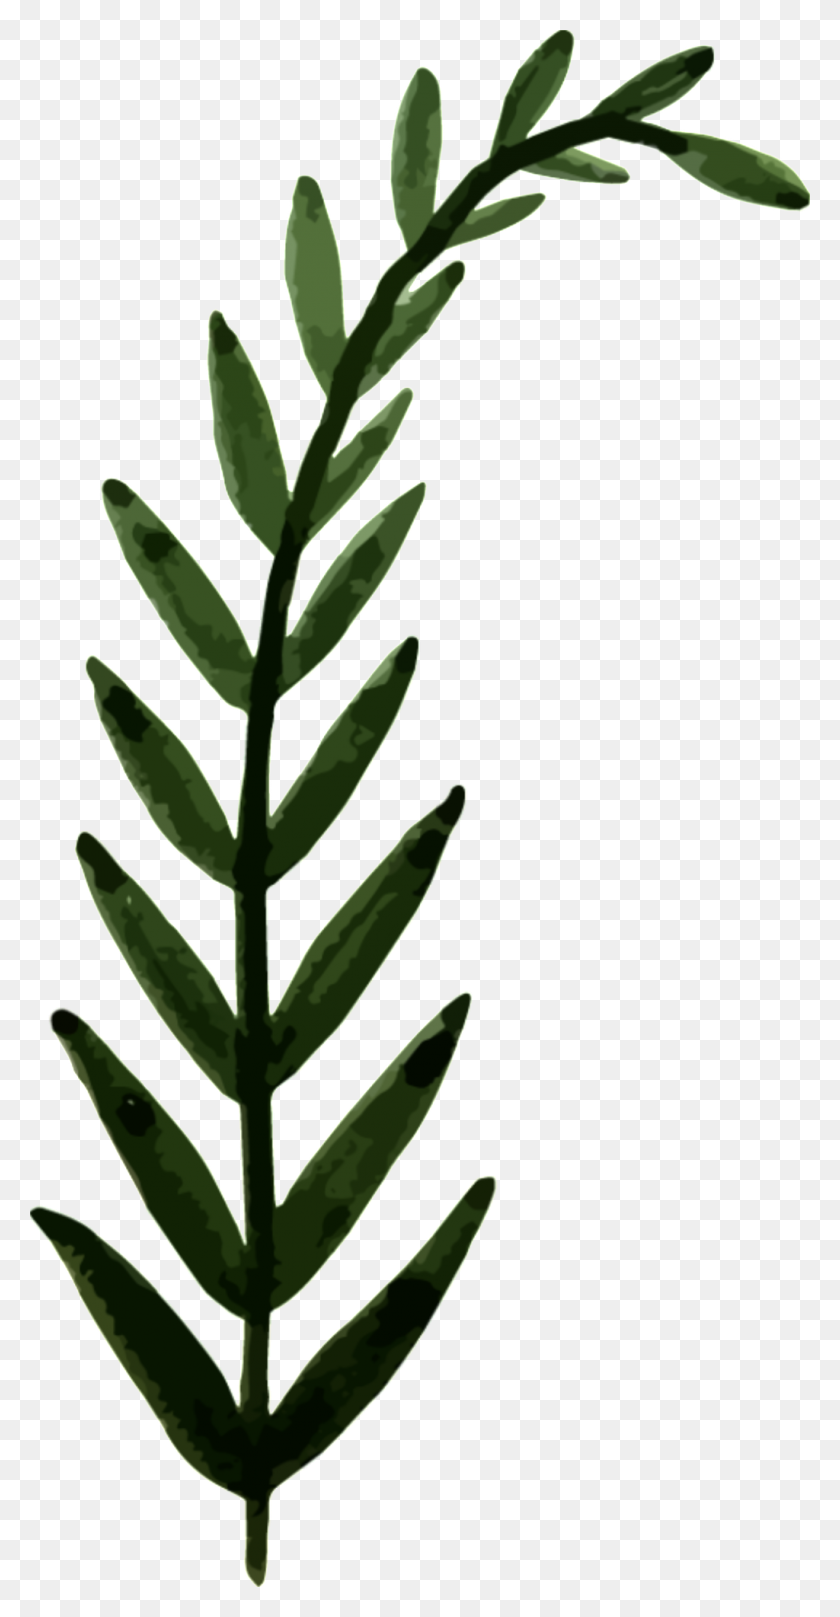 Hand Painted Leaves Png Transparent Free Png Download Png Vector Tea Leaf Png Stunning Free Transparent Png Clipart Images Free Download Dahlia flower png orange transparent image. hand painted leaves png transparent